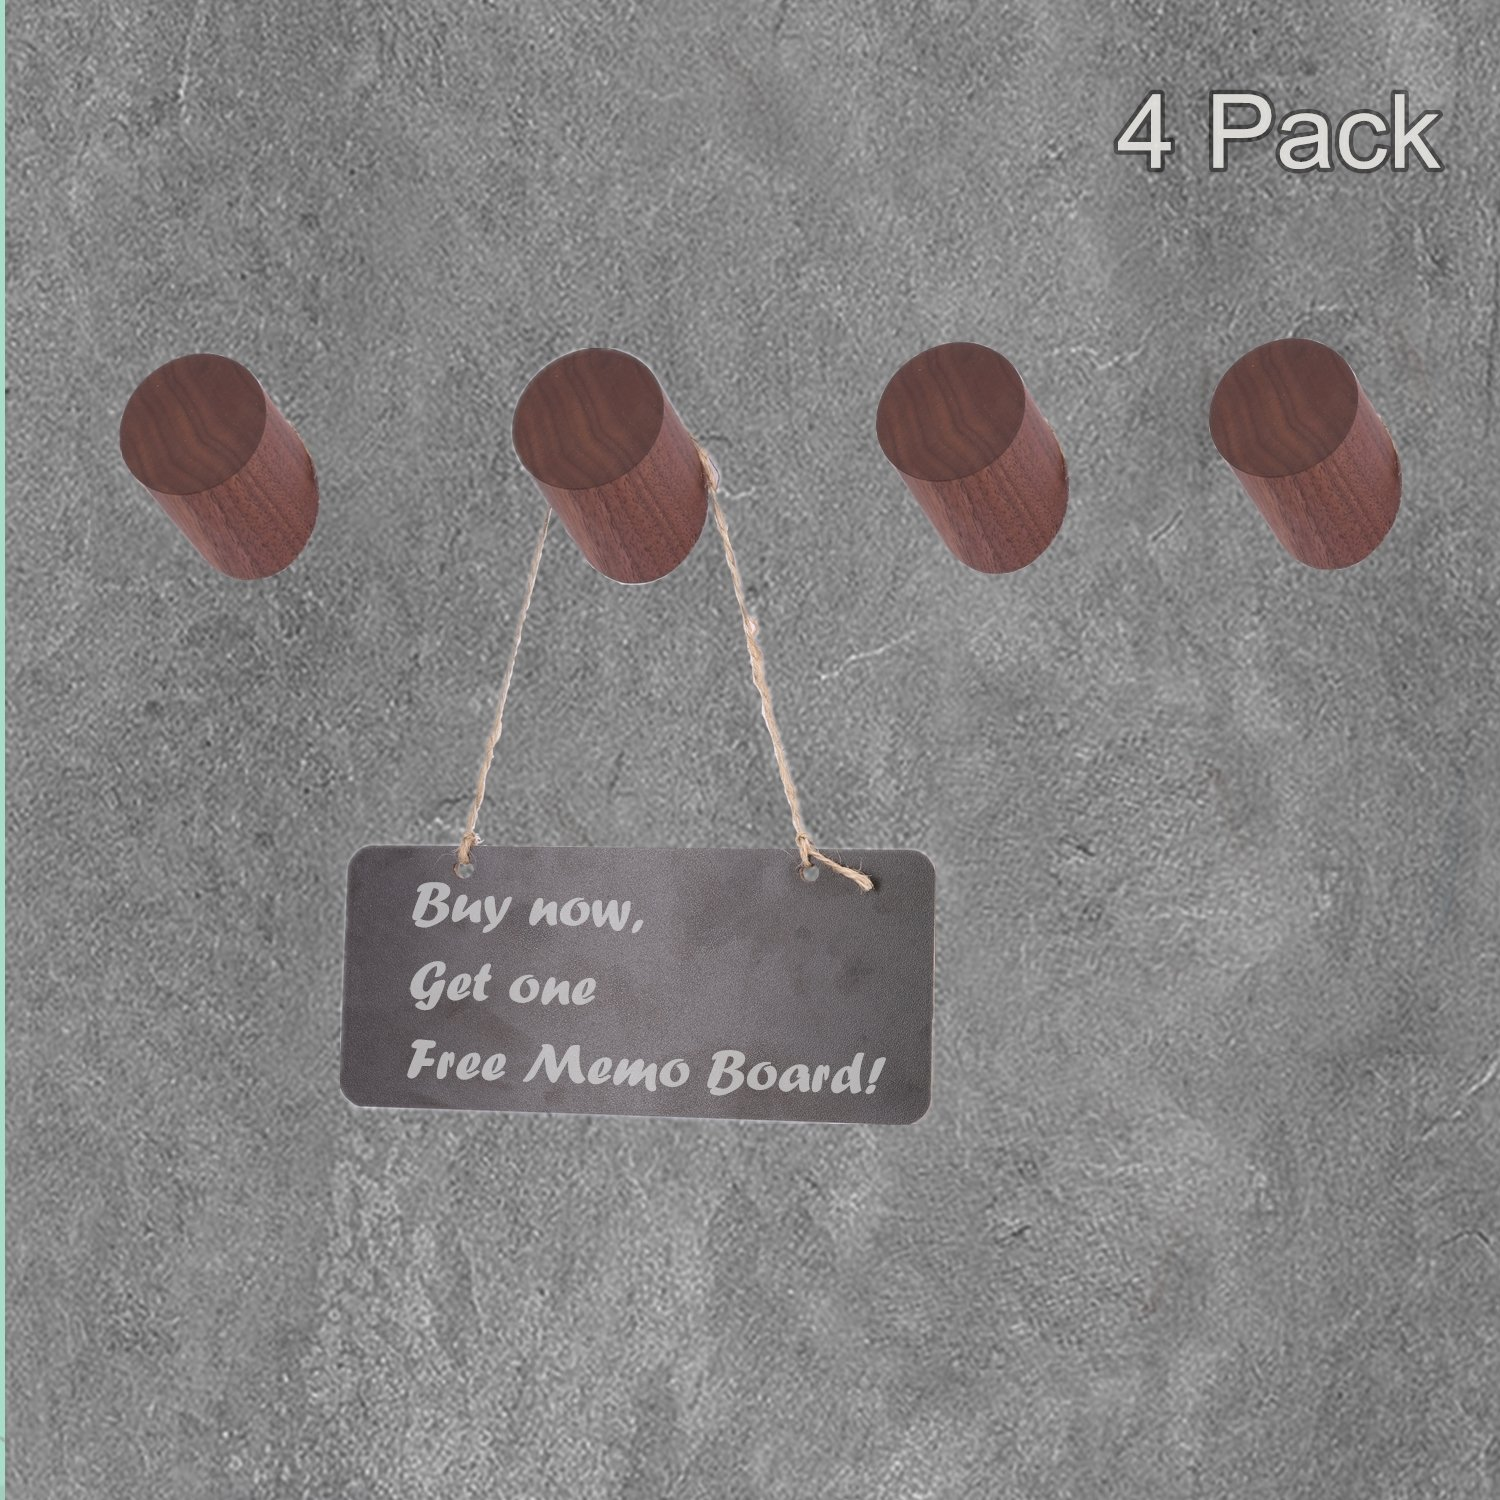 COMMODA Black Walnut Natural Wooden Coat Hooks Wall Mounted Vintage Single Utility Rack Organizer Hangers, Handmade Decorative Craft Clothes Hat Bags Rack, (Set of 4) Message Board for Free